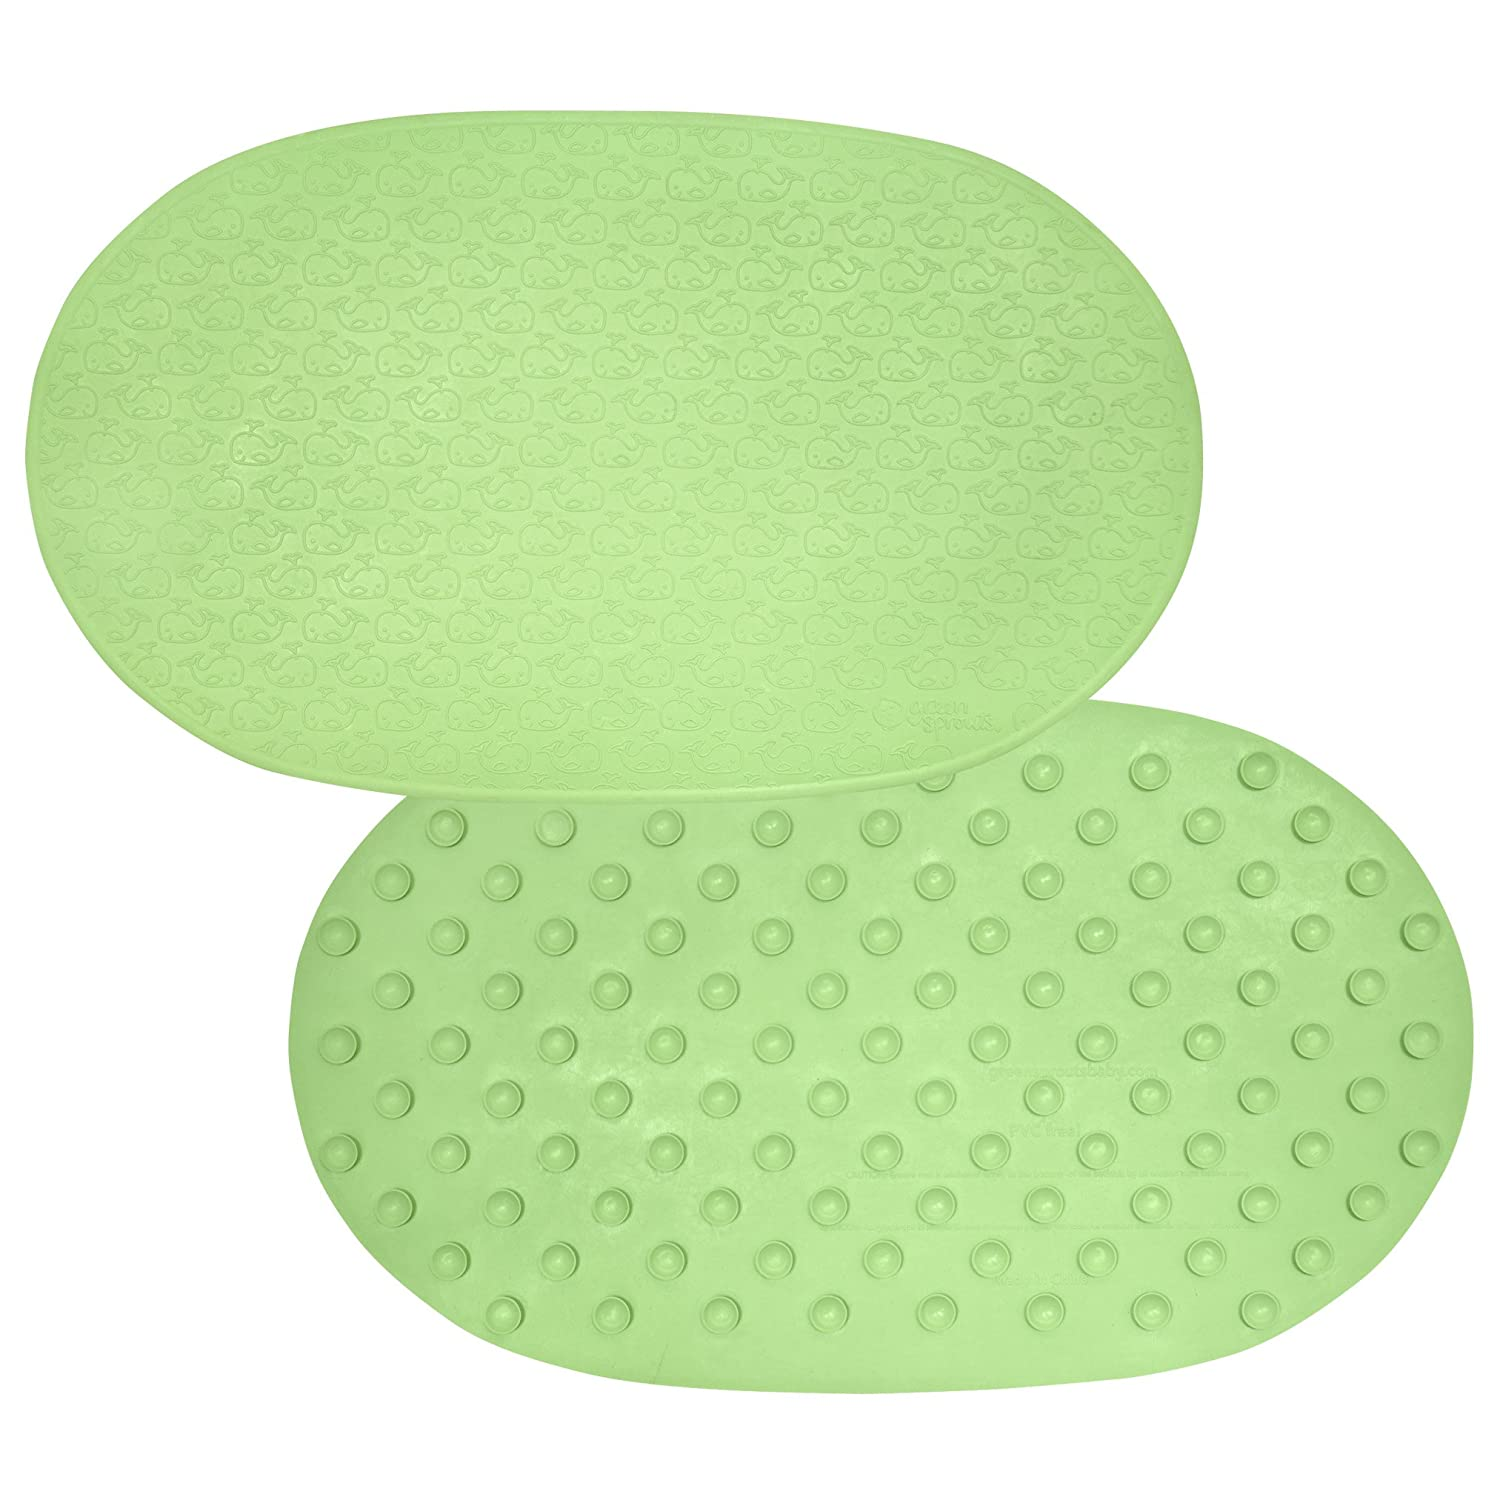 Charming Amazon.com: Green Sprouts Baby Bath Mat (Discontinued By Manufacturer): Baby